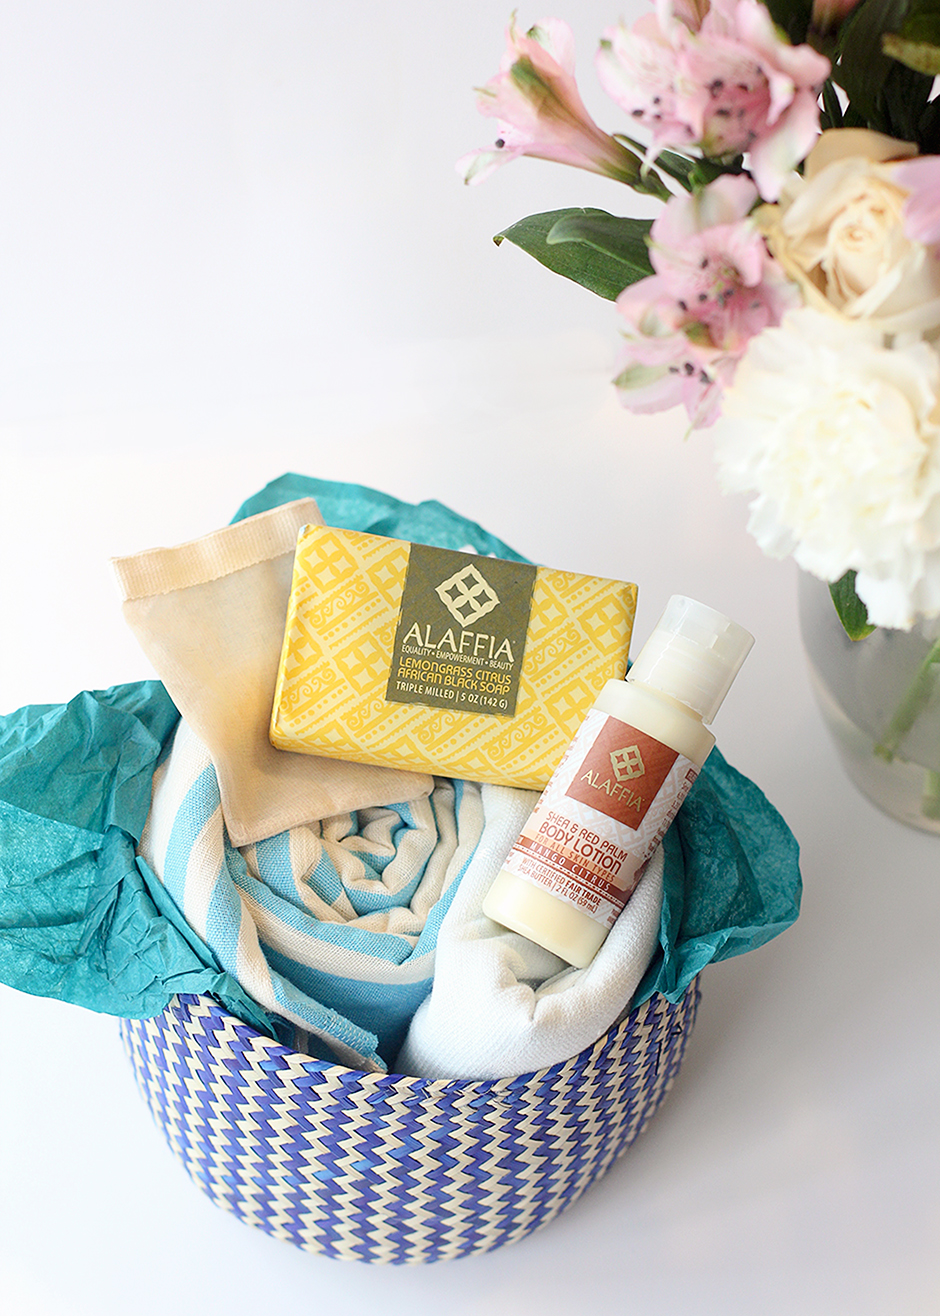 GlobeIn- A Fair Trade monthly Subscription Box. This theme is bathe!